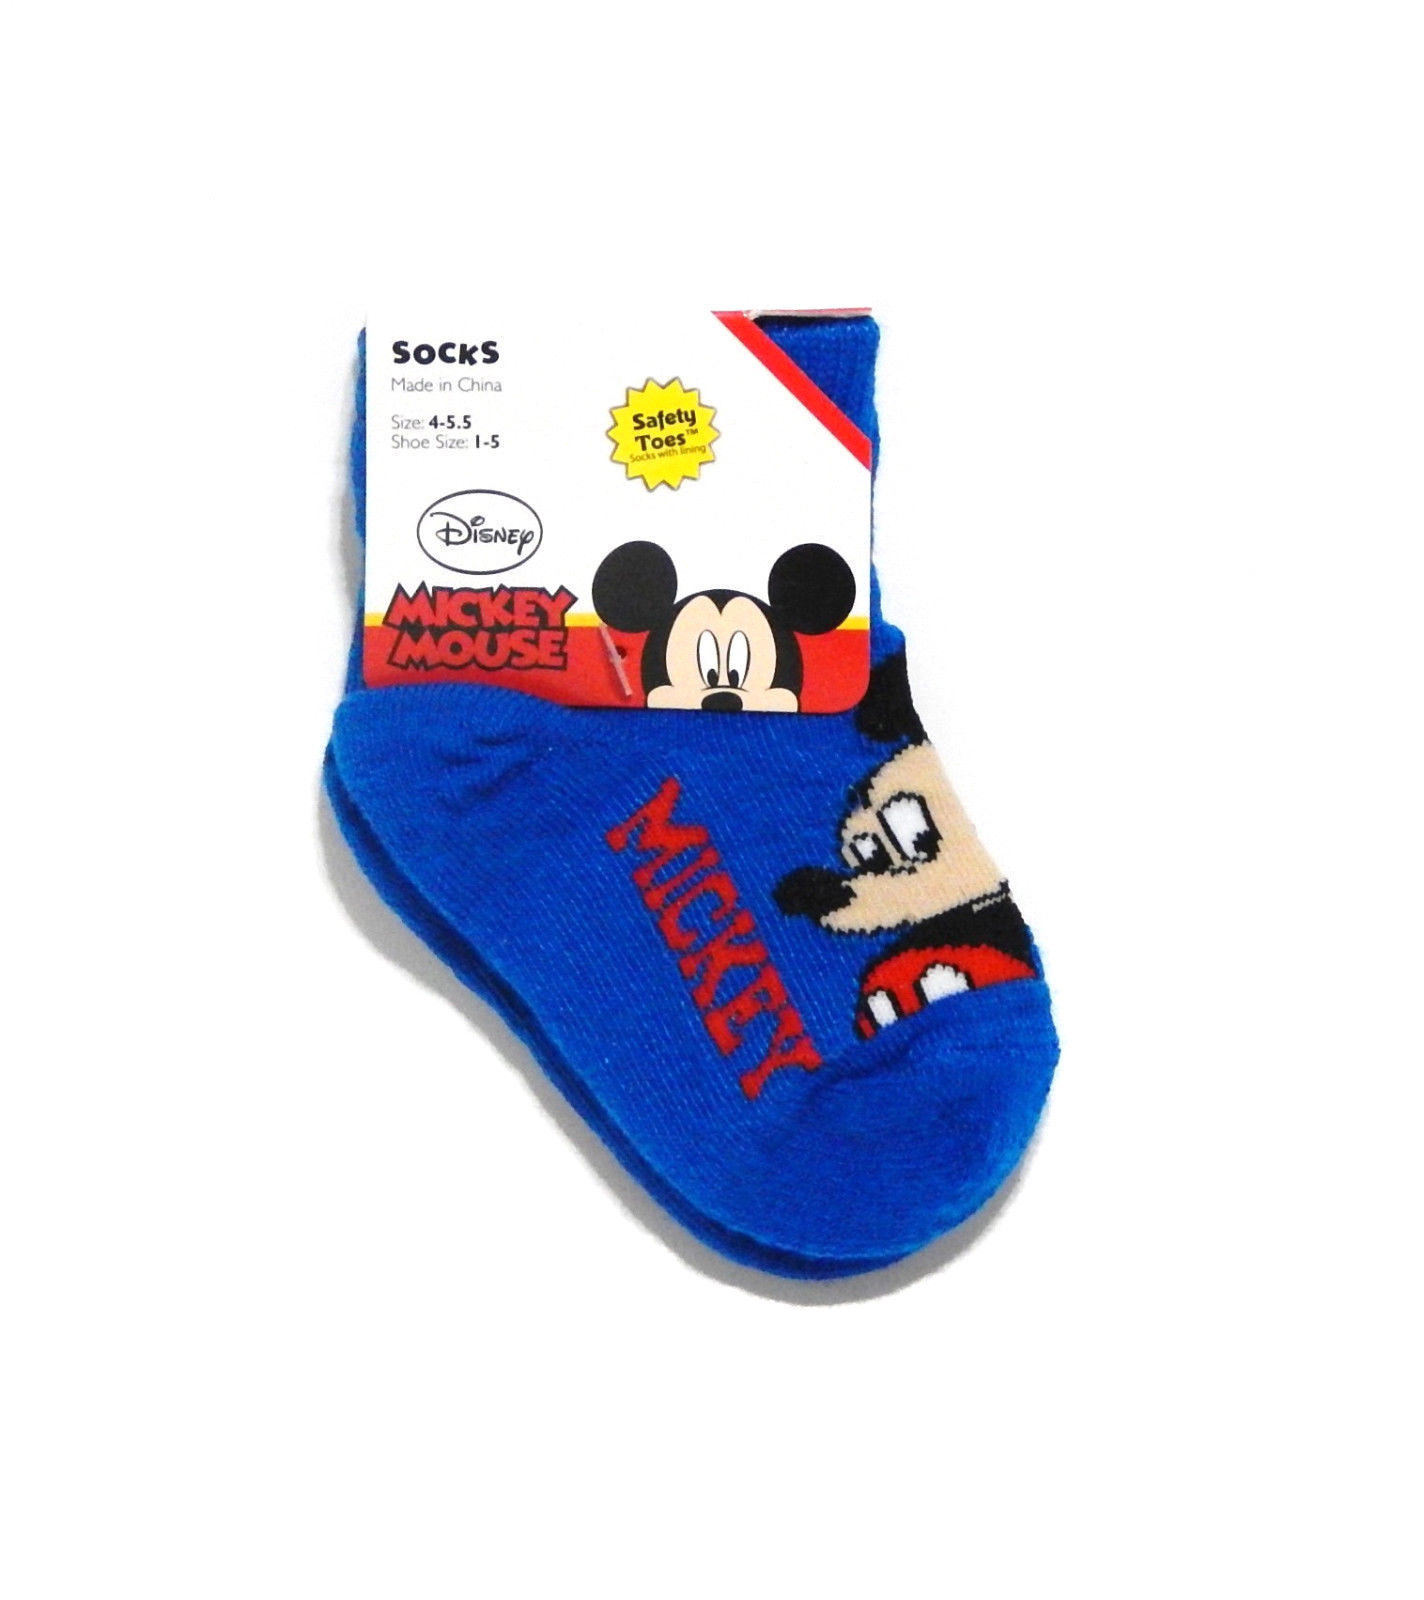 b24743373 Disney Mickey Mouse Socks Kids Toddler Baby and 50 similar items